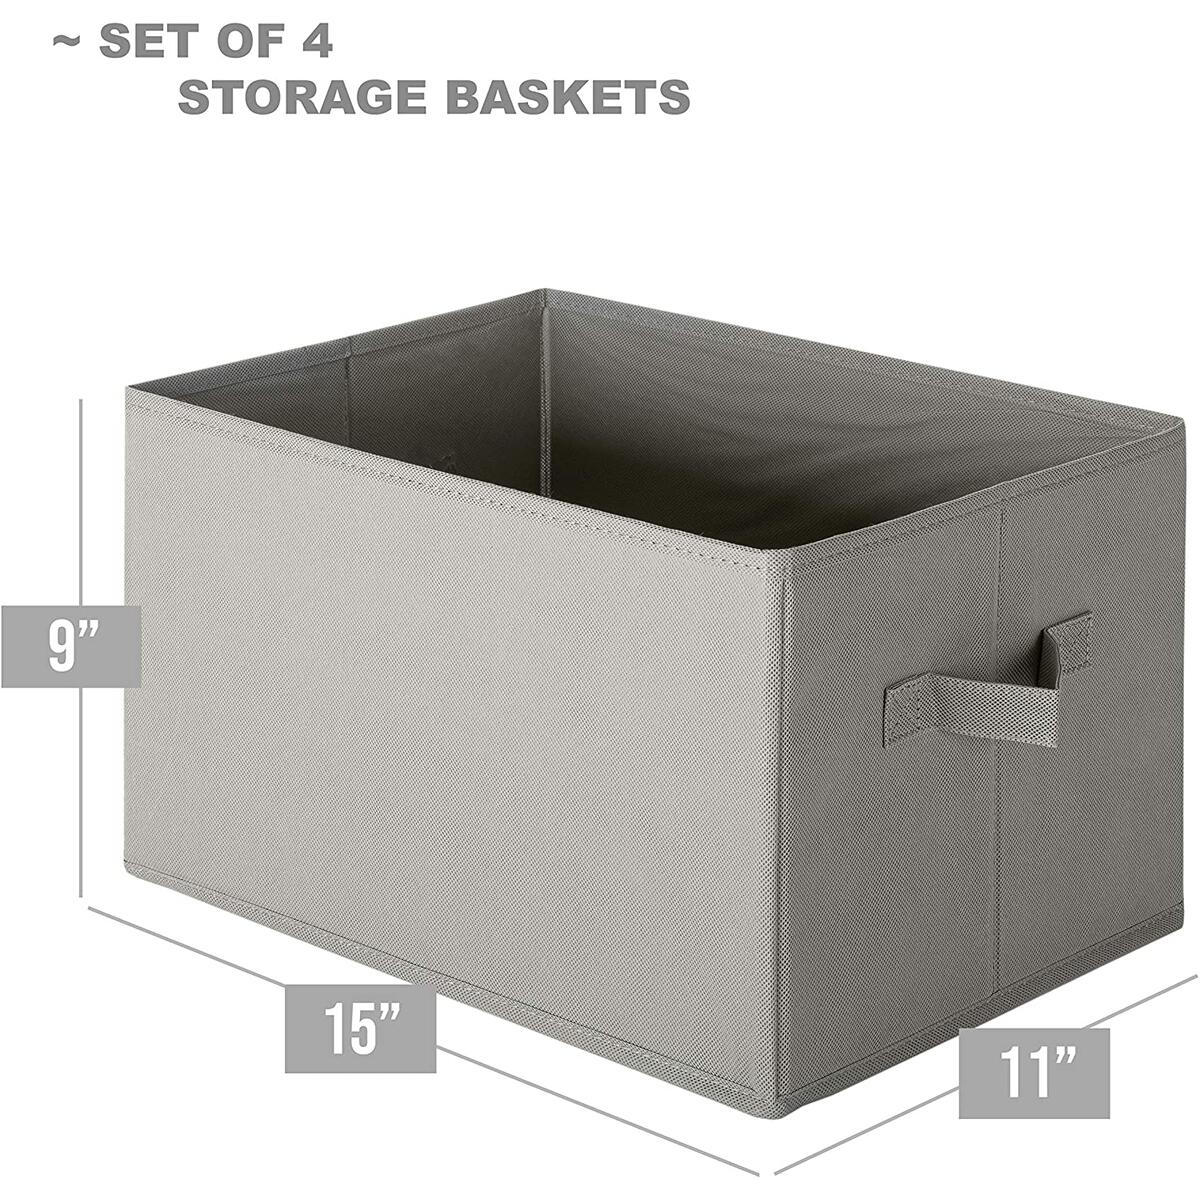 Storage Baskets - 4 Pack - Durable and Sturdy Large Storage Bins (Light Grey)